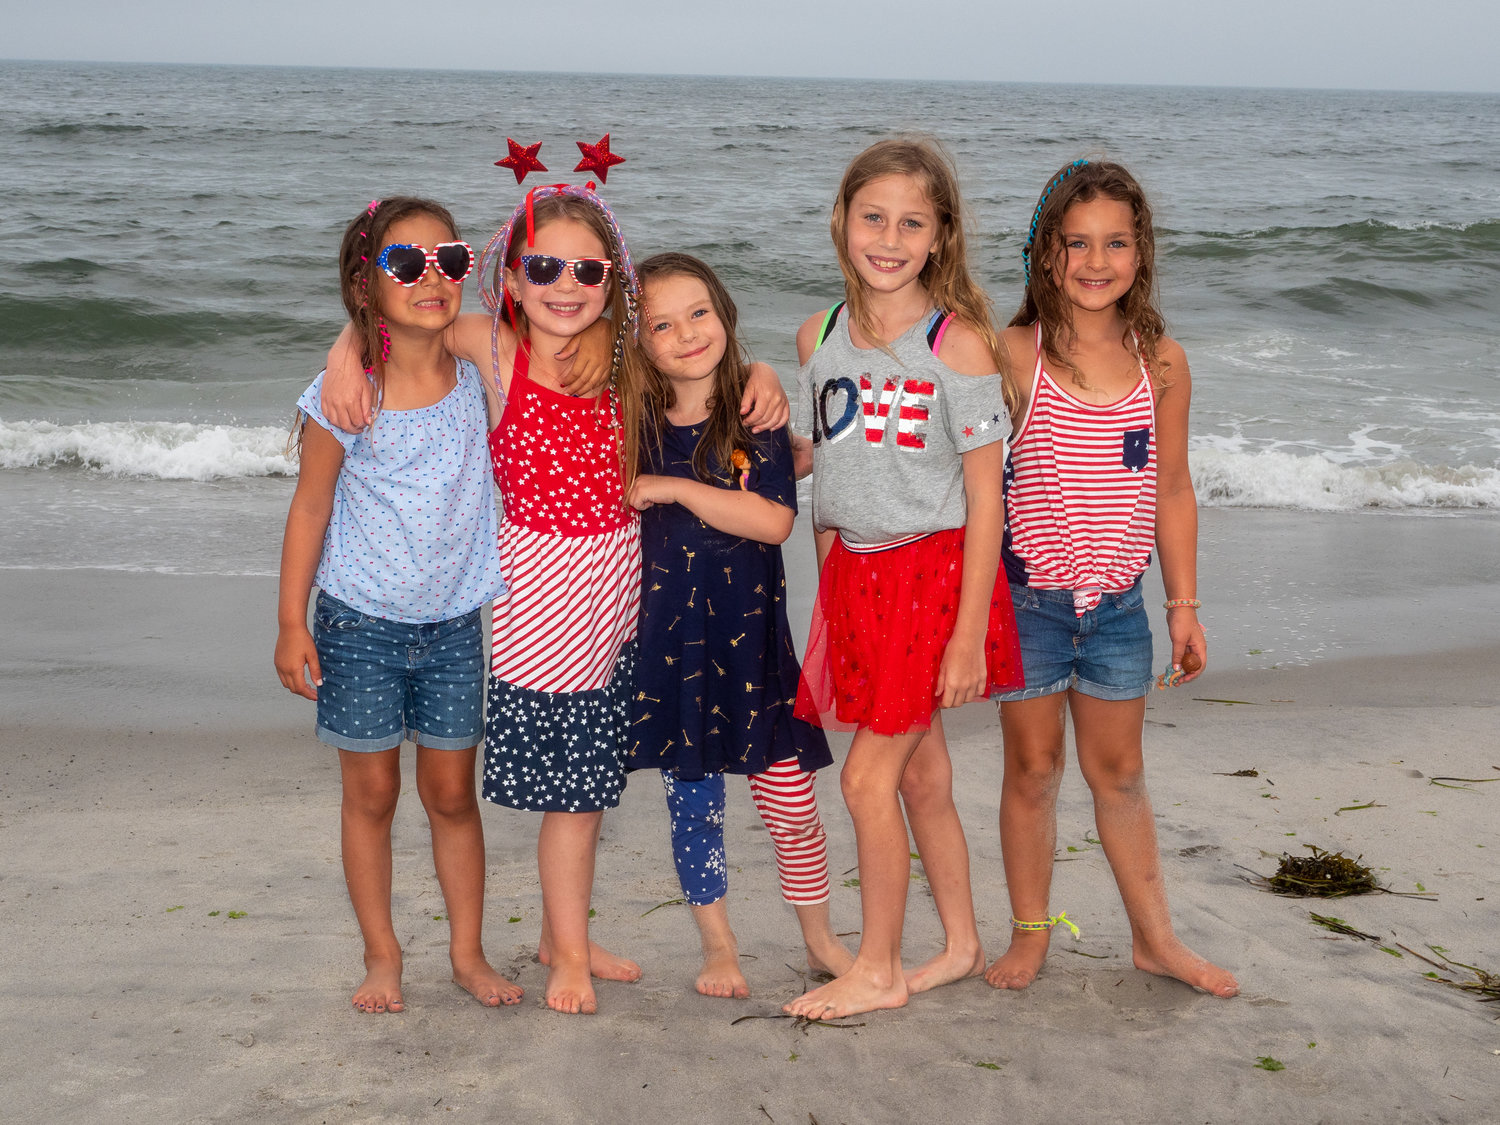 Maris, far left, Emma, Skylar, Piper, and Chcaile on the beach.